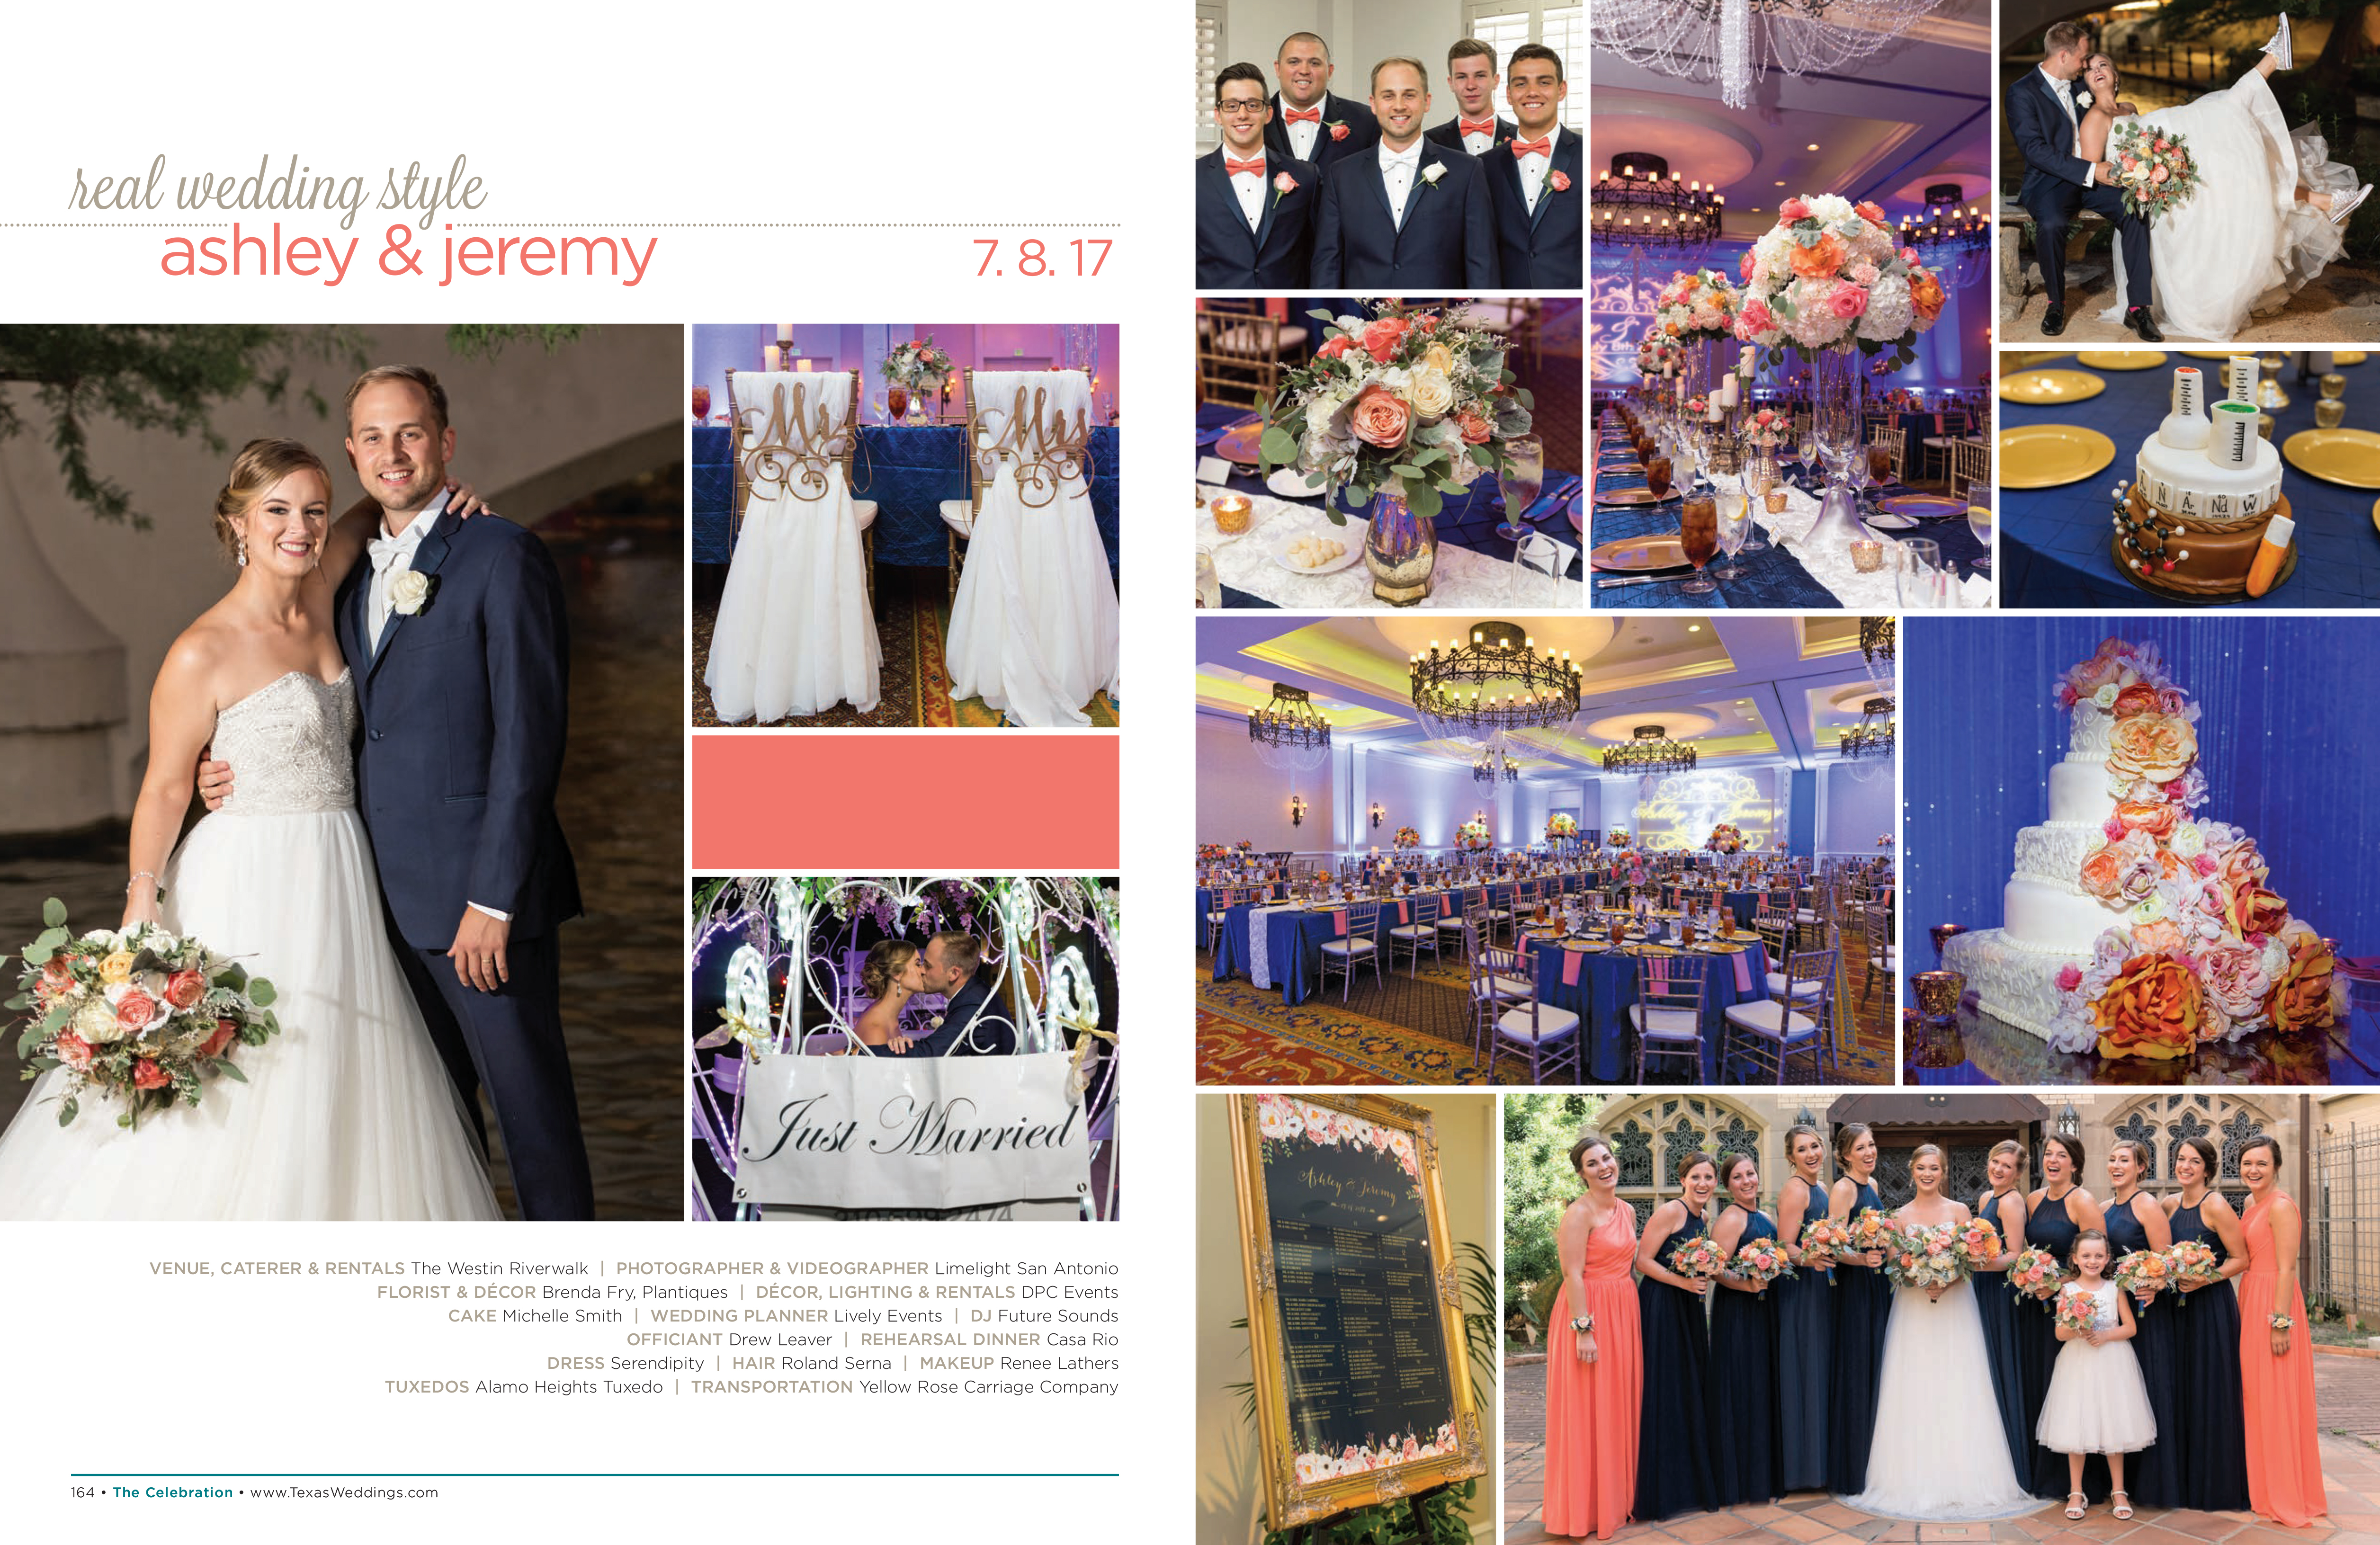 Ashley & Jeremy in their Real Wedding Page in the Spring/Summer 2018 Texas Wedding Guide